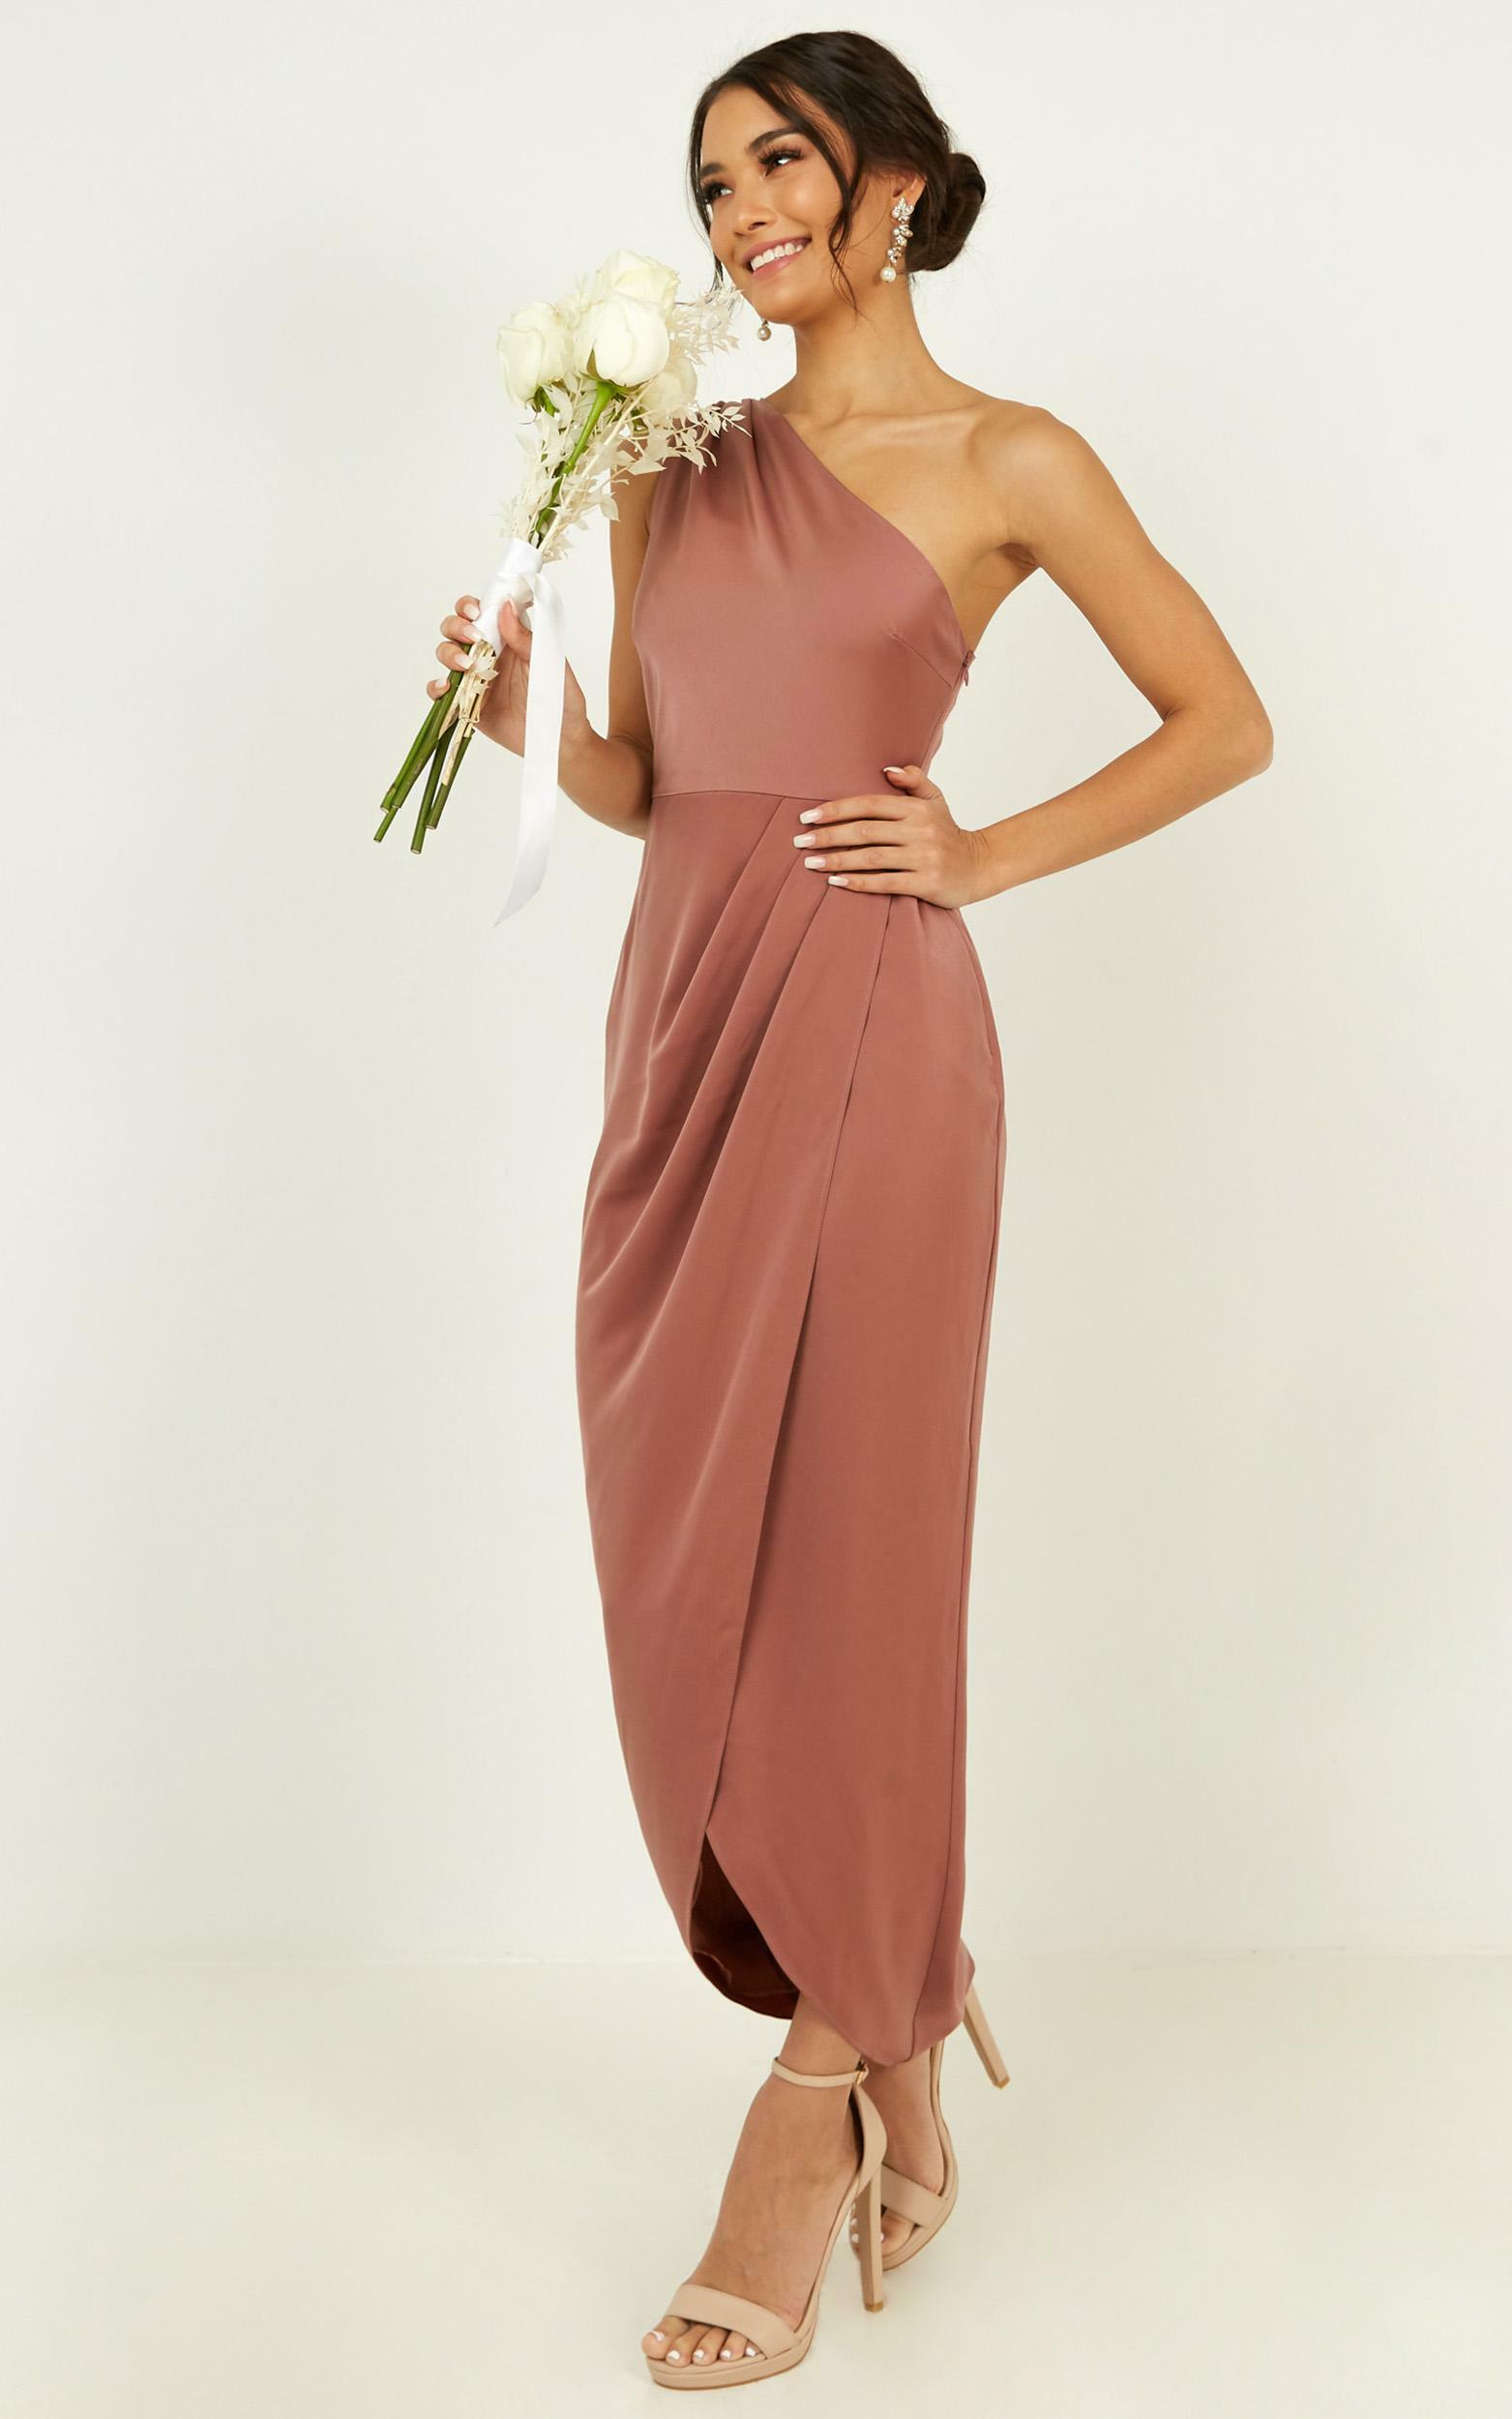 Felt So Happy Dress in Dusty Rose - 14, PNK4, hi-res image number null